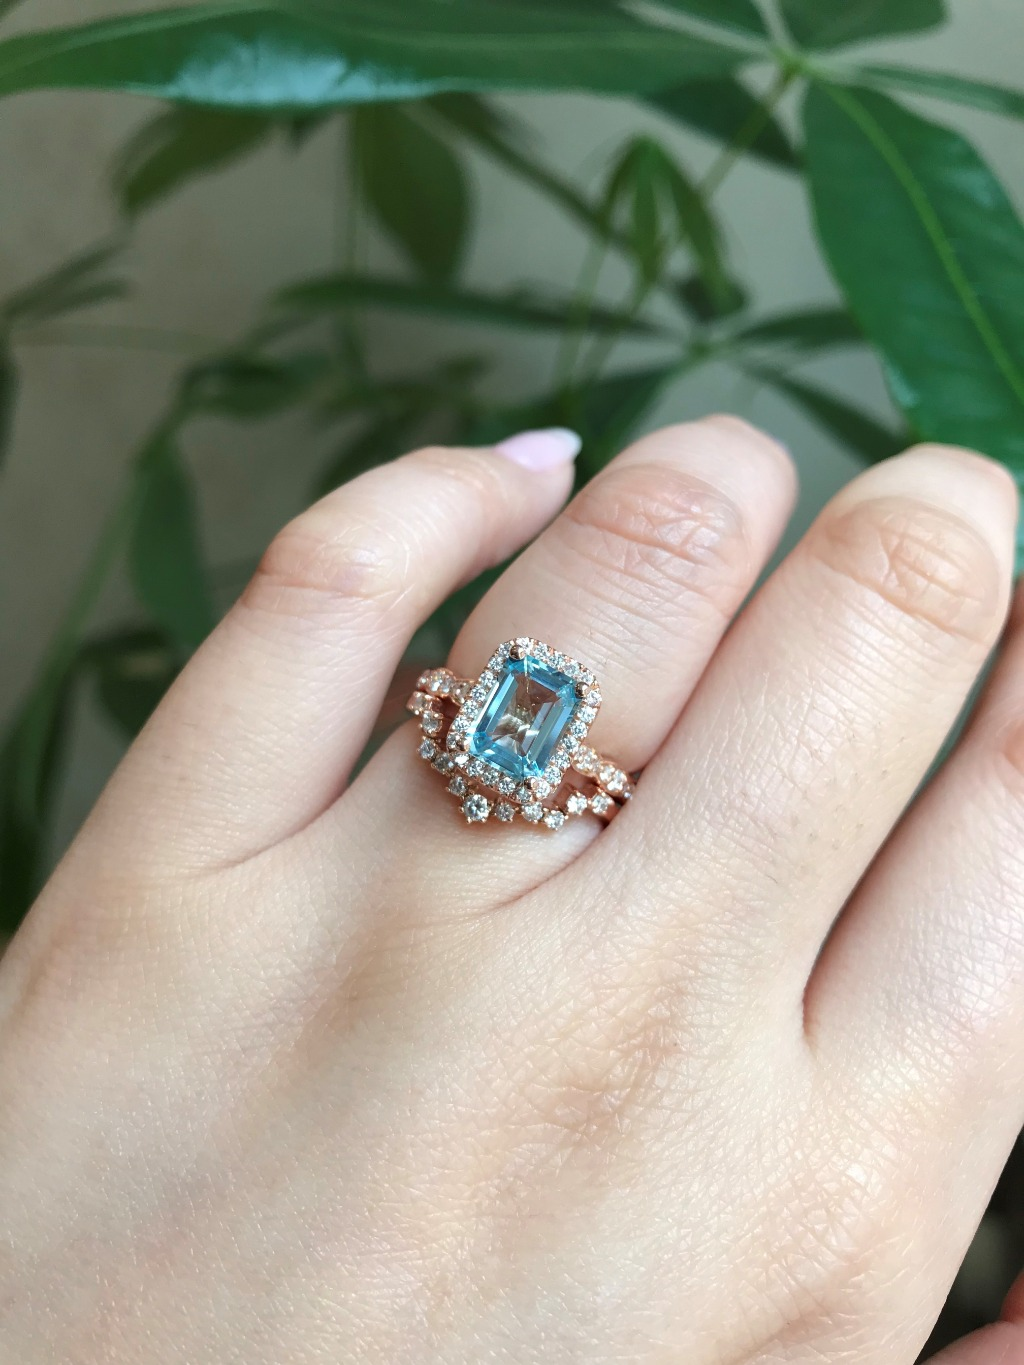 Elegant yet unique wedding set! This aquamarine bridal set features a halo diamond aquamarine engagement ring set in 14k rose gold